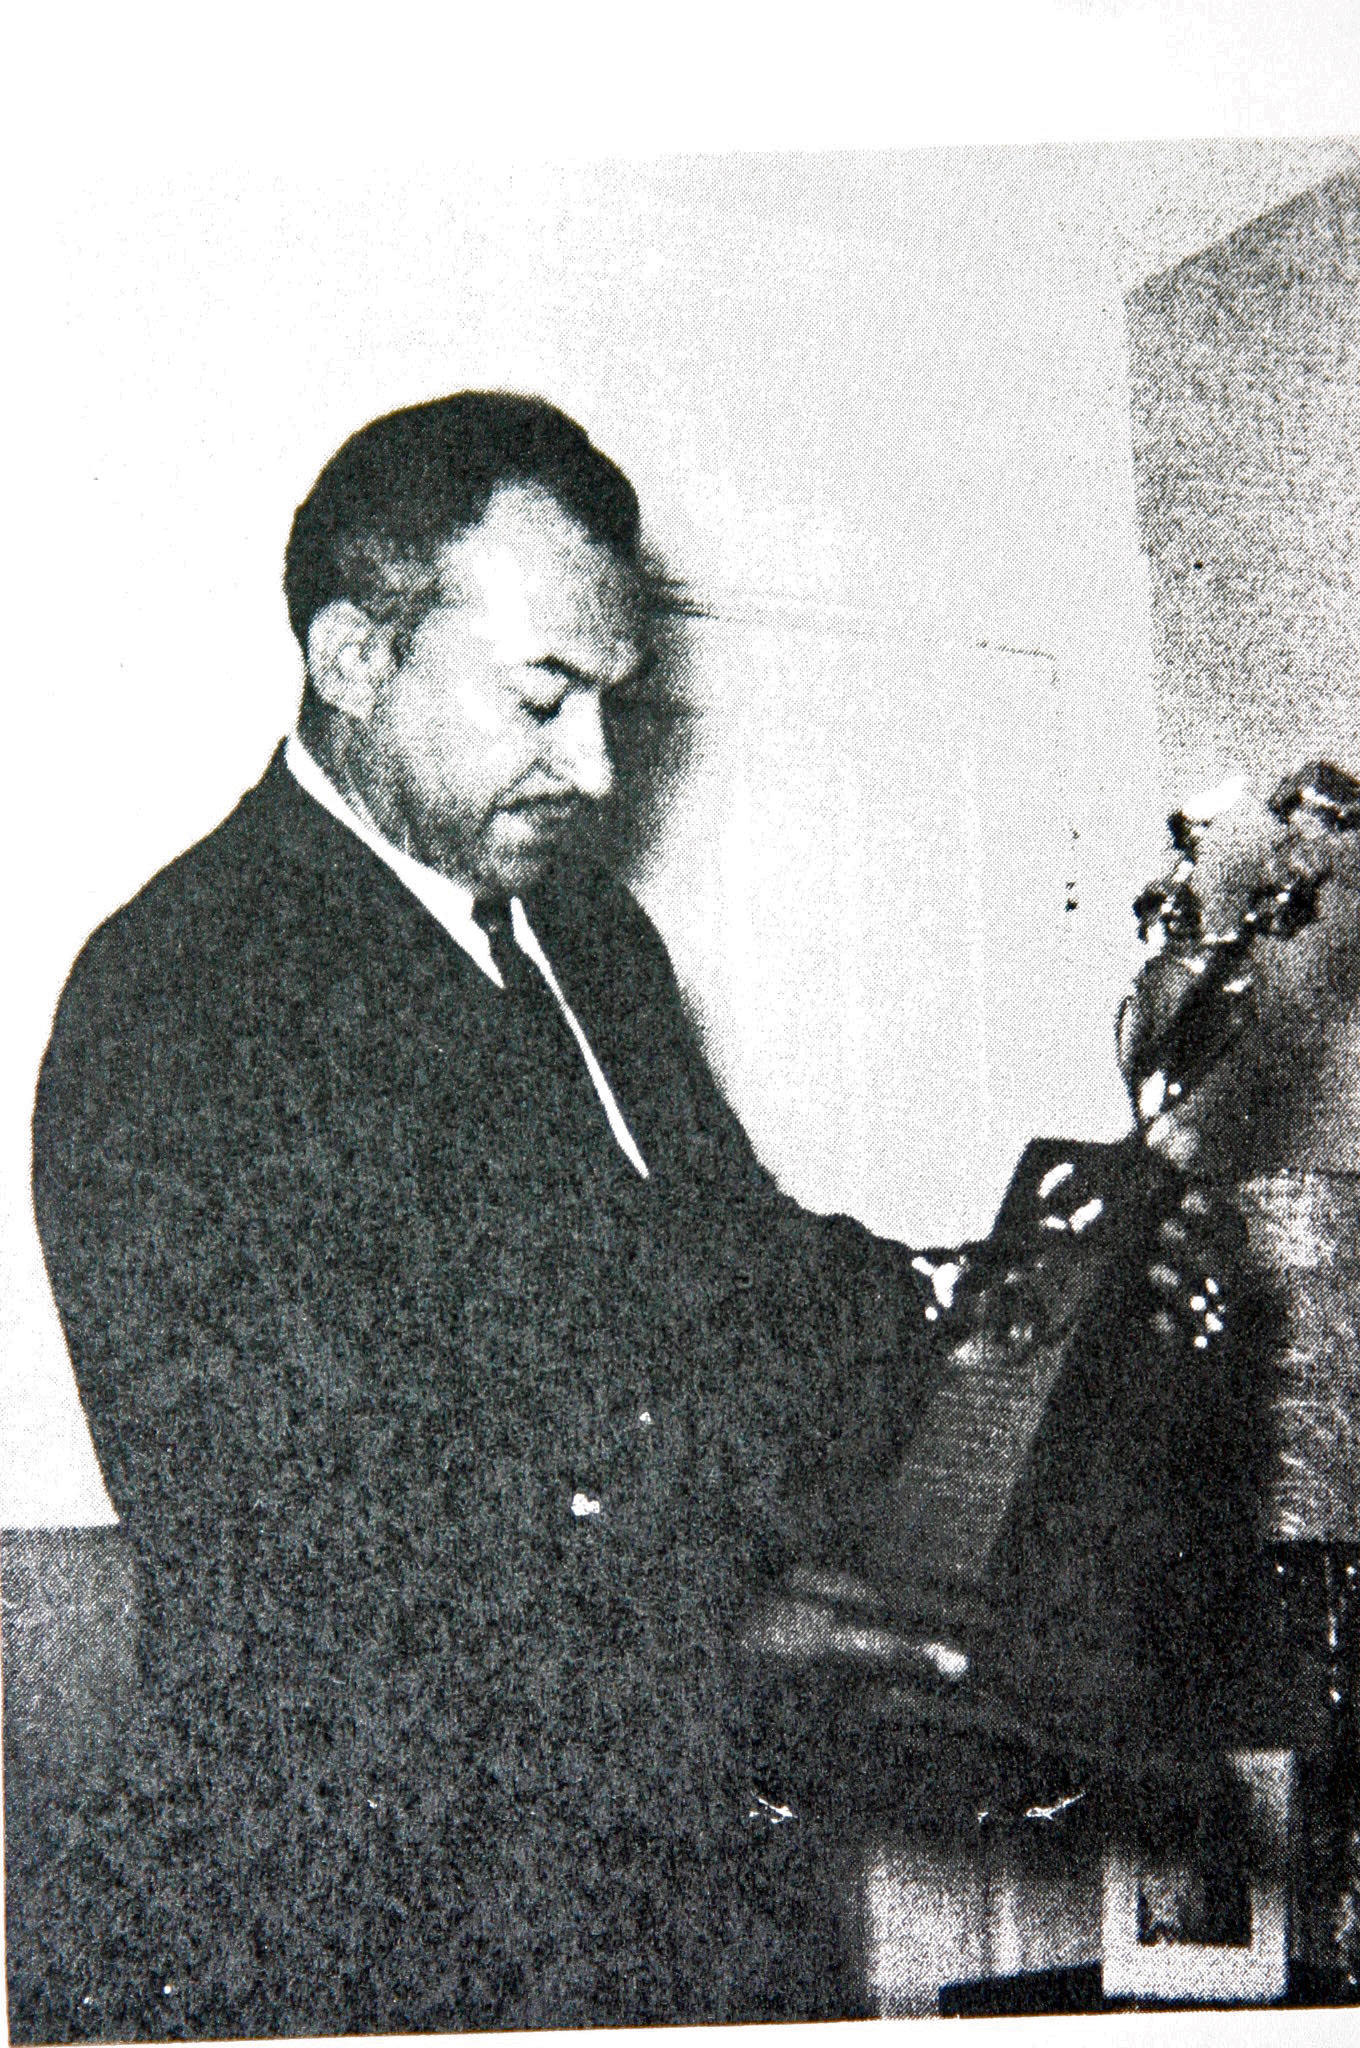 Another trophy received by Agapito from Manuel Villafranca (1963)